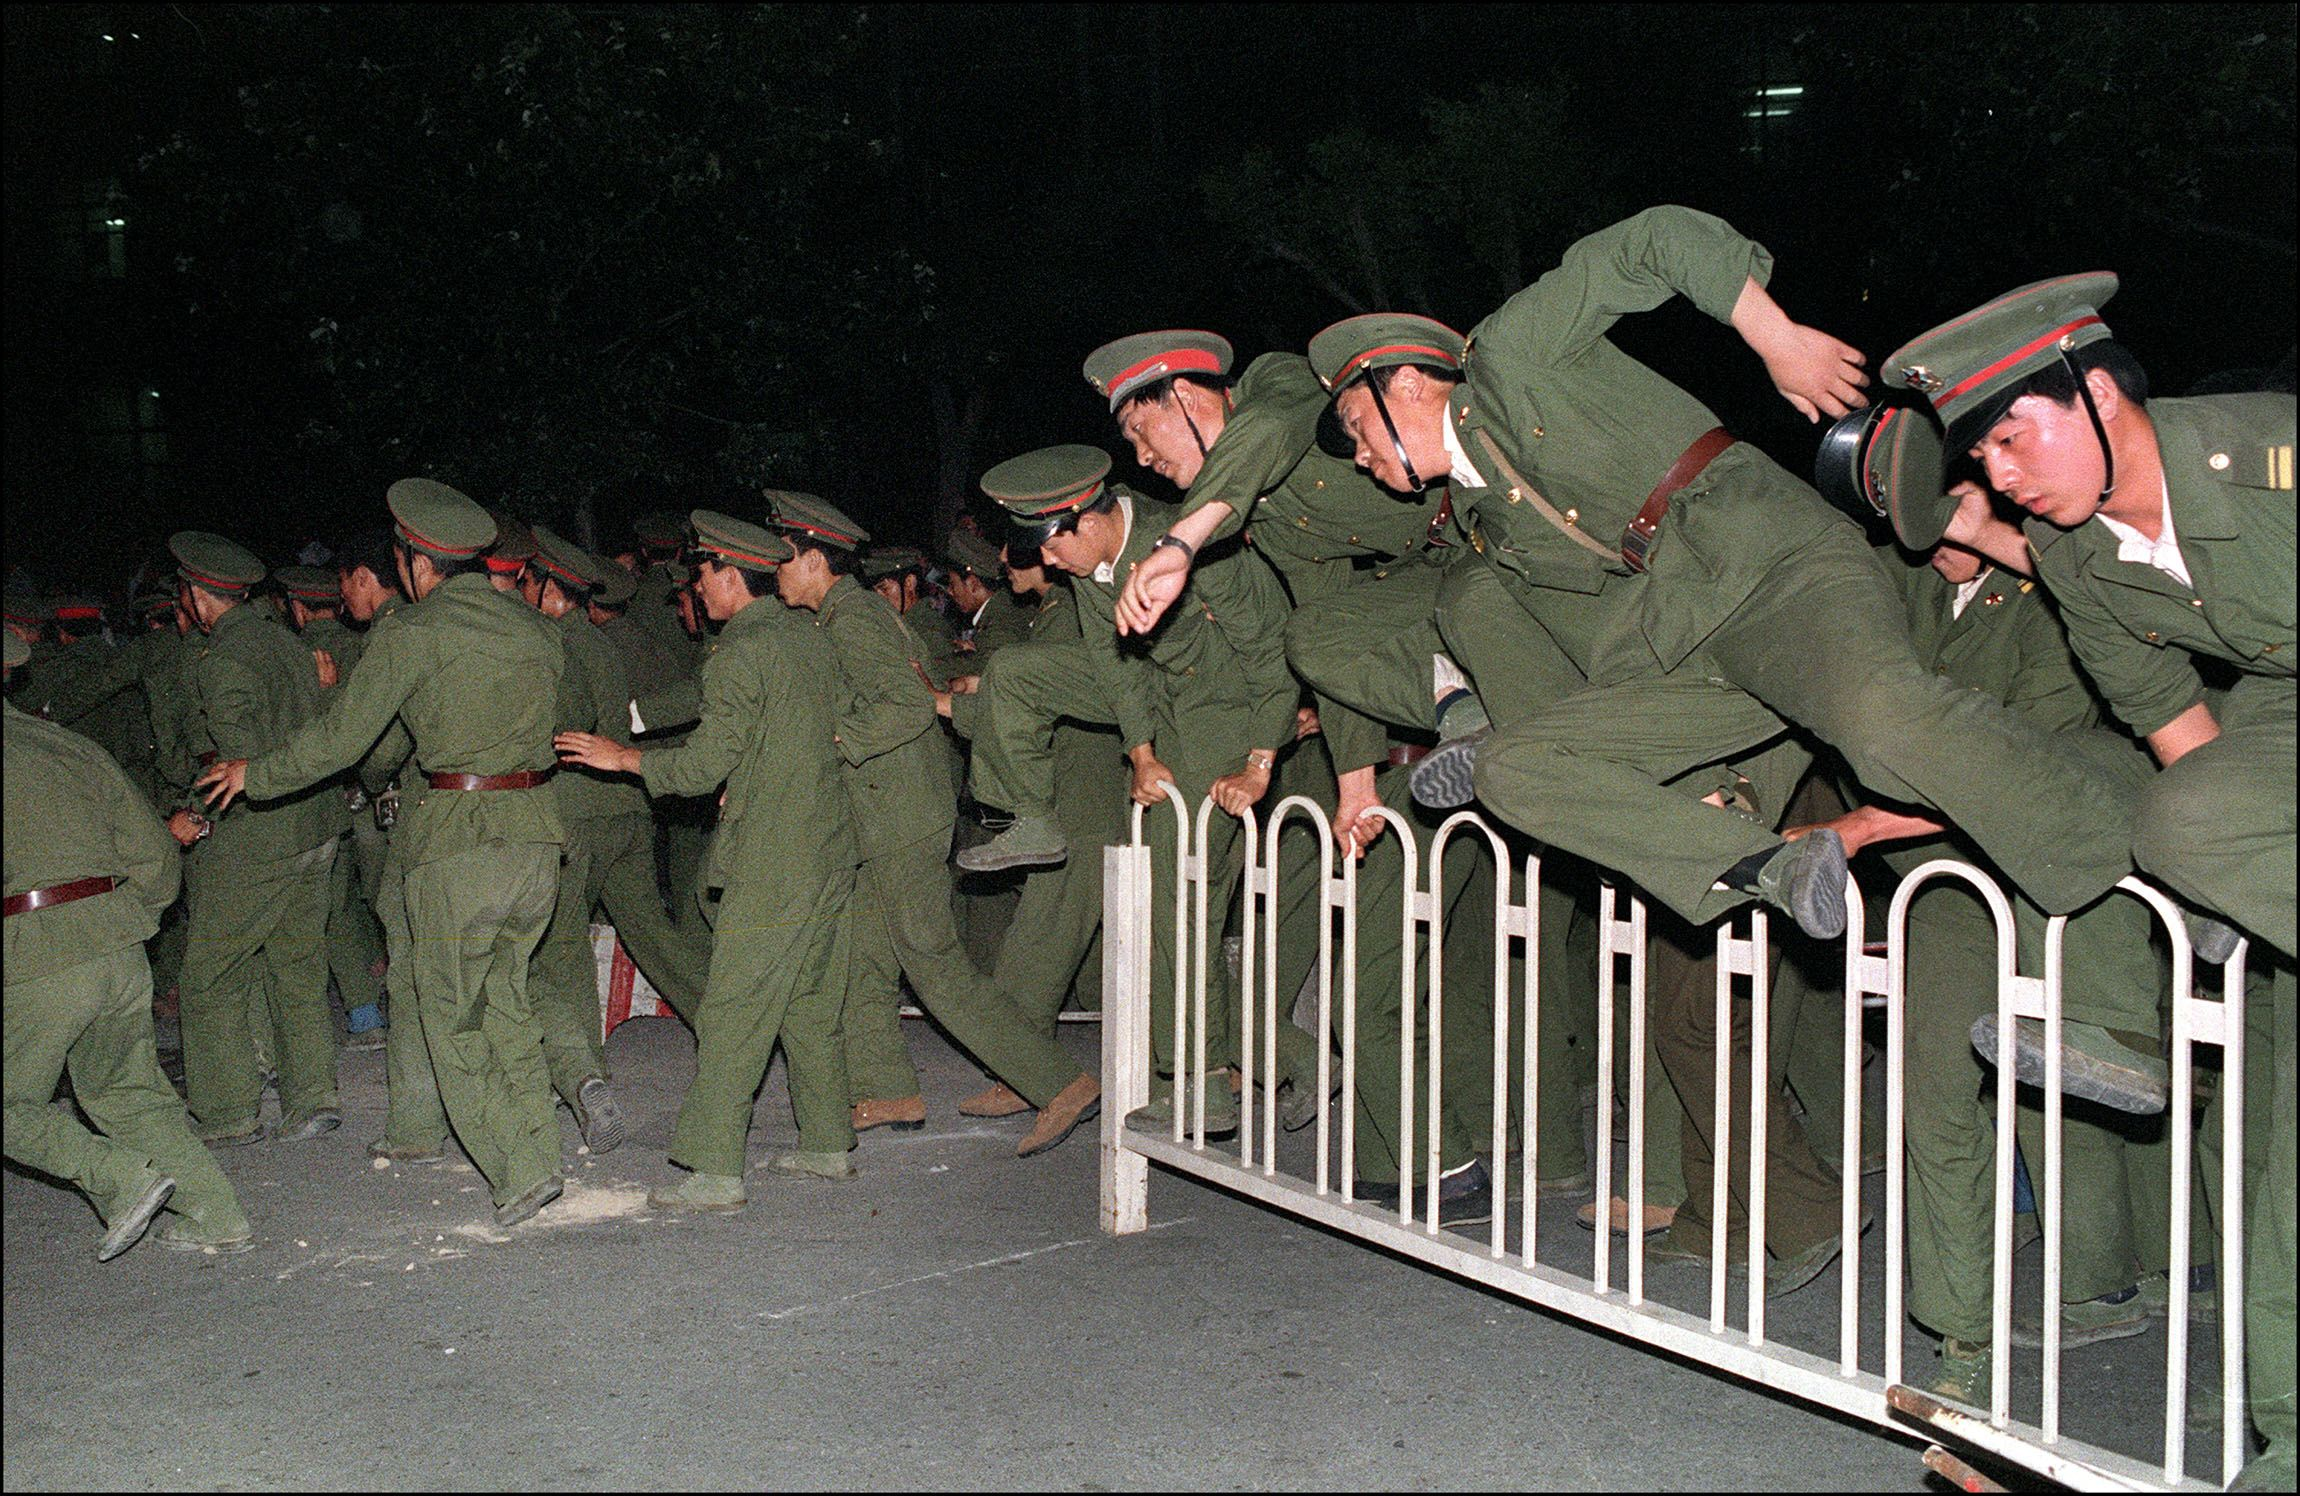 People Liberation Army (PLA) soldiers leap over a barrier on Tiananmen Square in central Beijing 04 June 1989. (CATHERINE HENRIETTE/AFP/Getty Images)